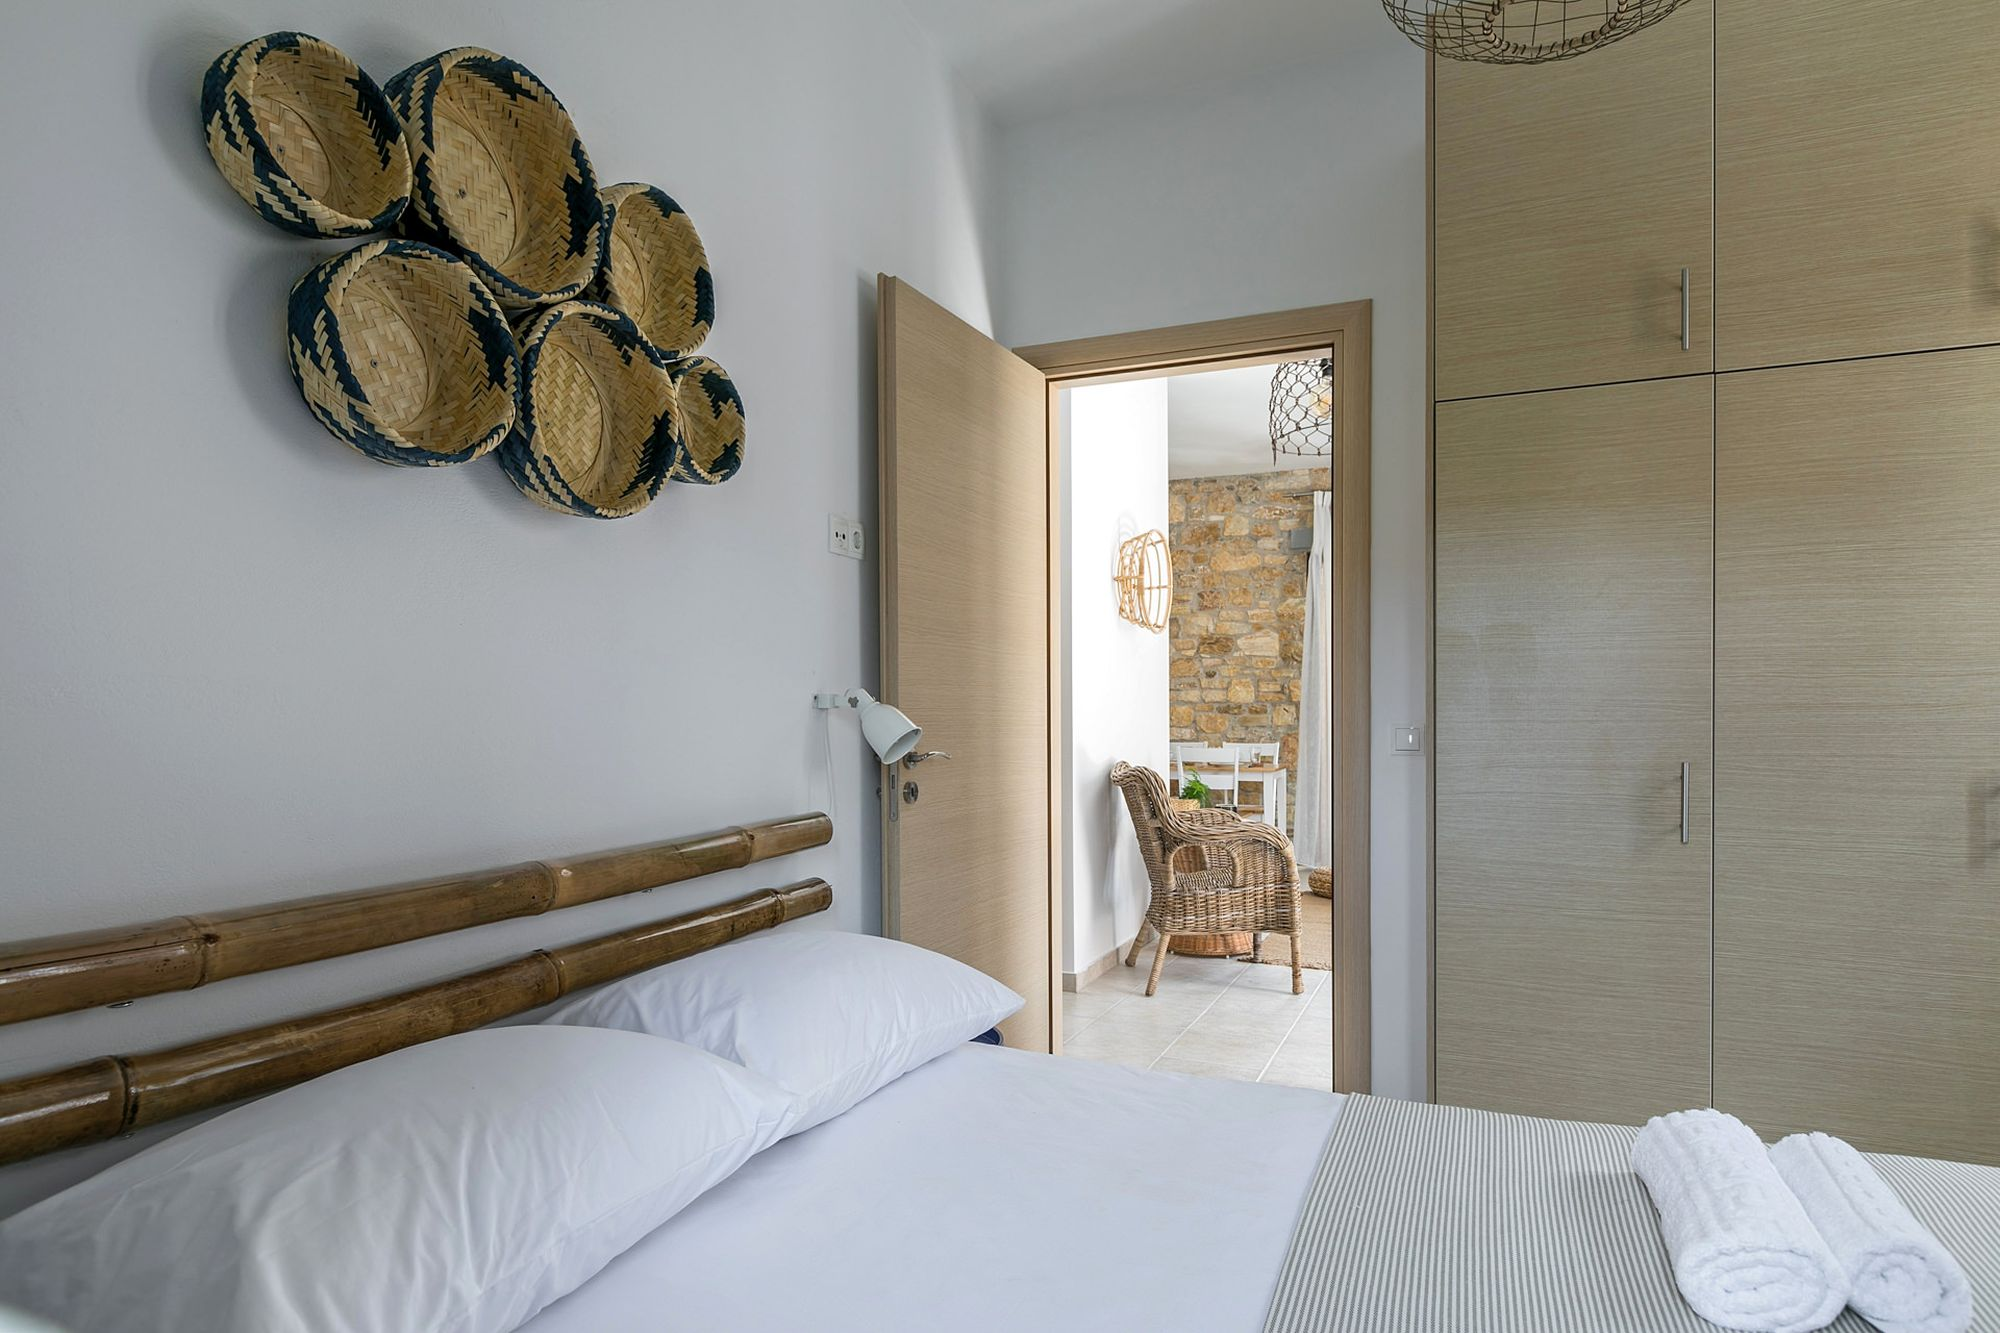 Bedroom with a double bed and decoration with bamboo masts and wicker objects on the wall over the bed.